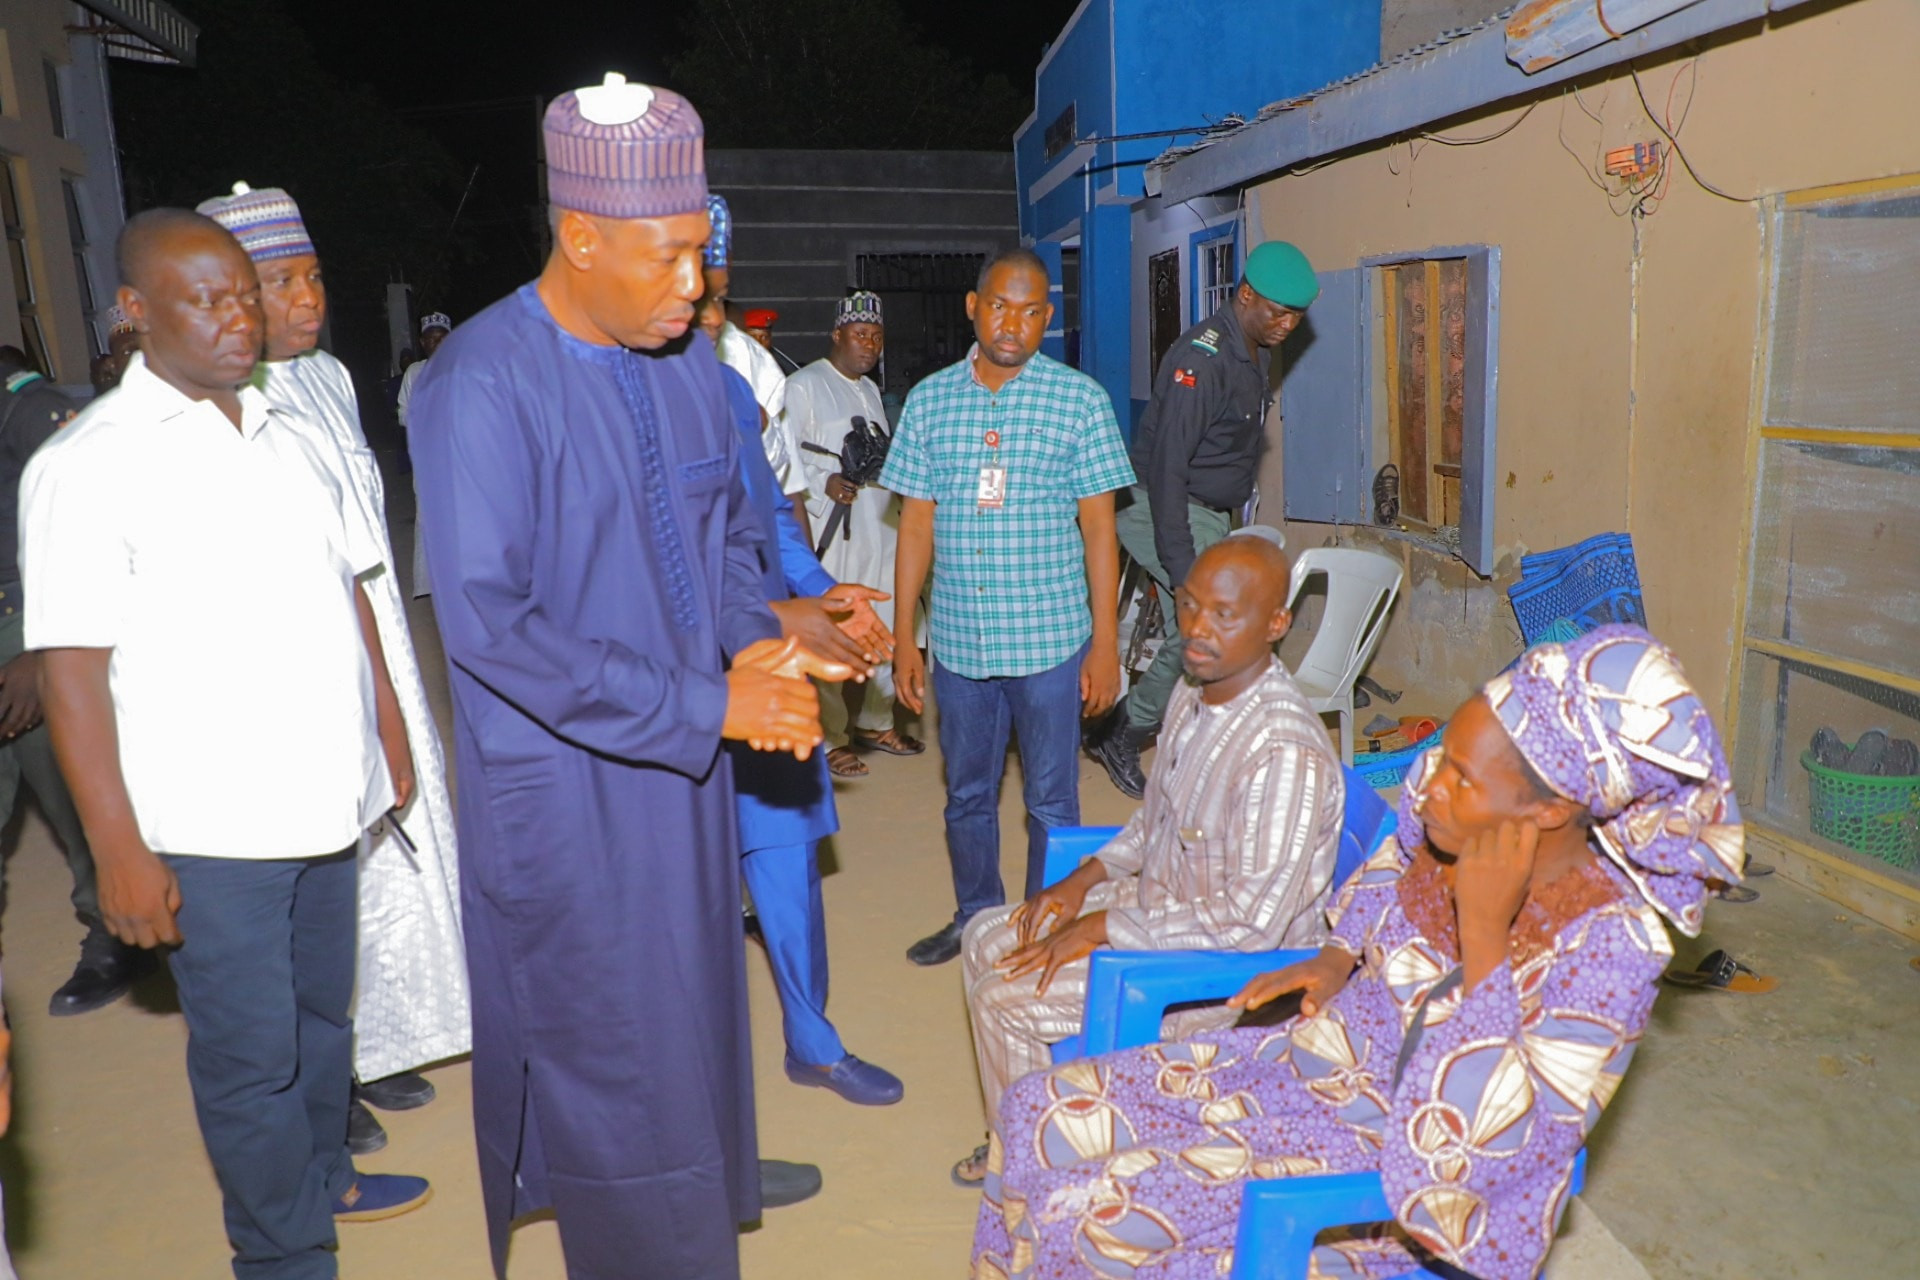 Maiduguri Church Violence: Governor Zulum visits pastor whose son was killed, says shooter is in police net